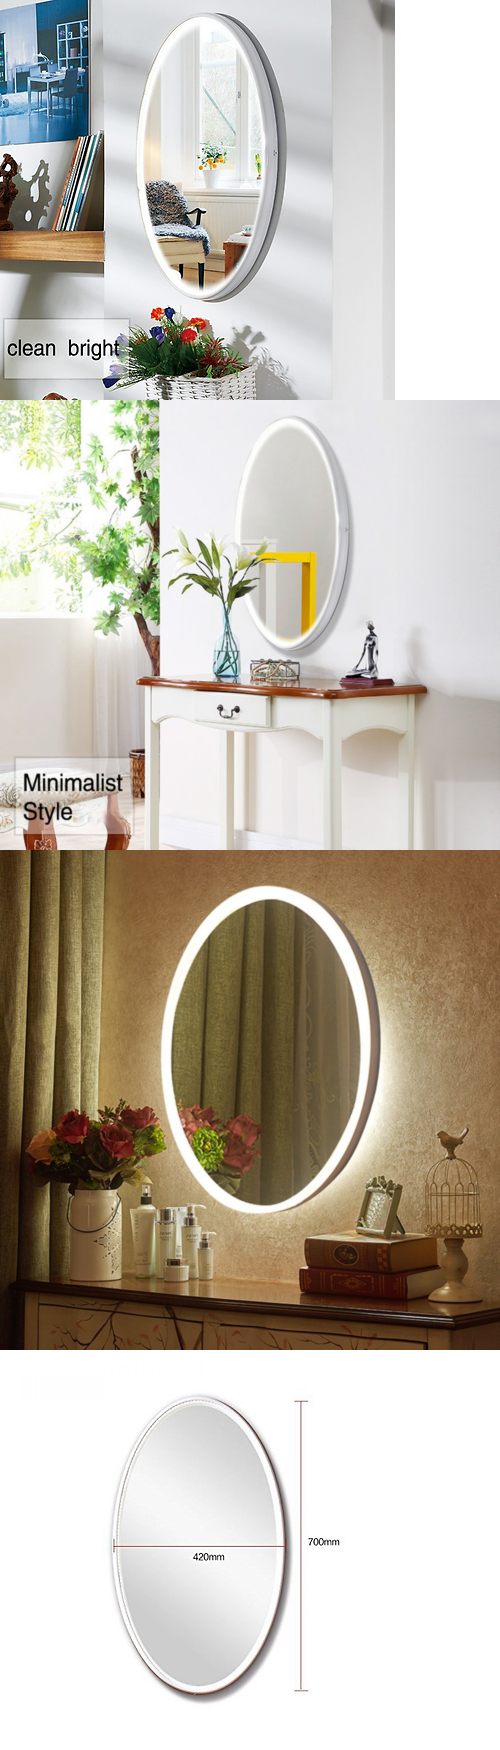 Mirrors oval led wall mirrors lighted vanity bedroom mirror